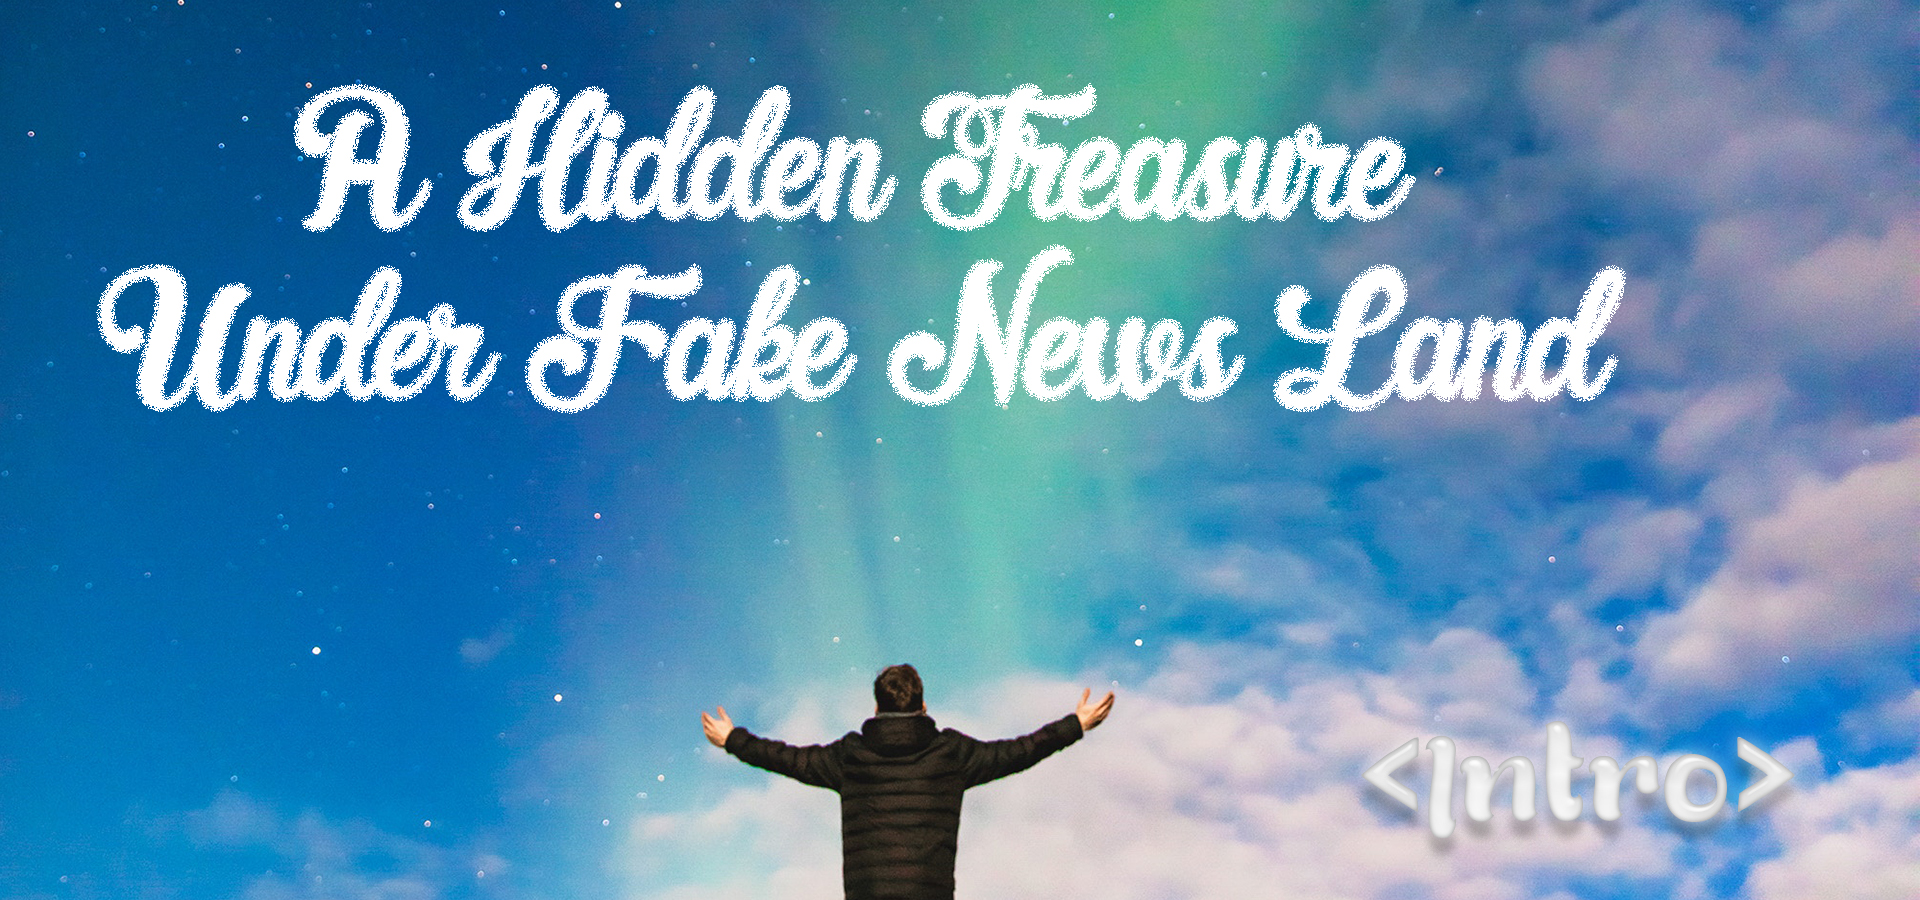 A Hidden Treasure Under Fake News Land (Intro)